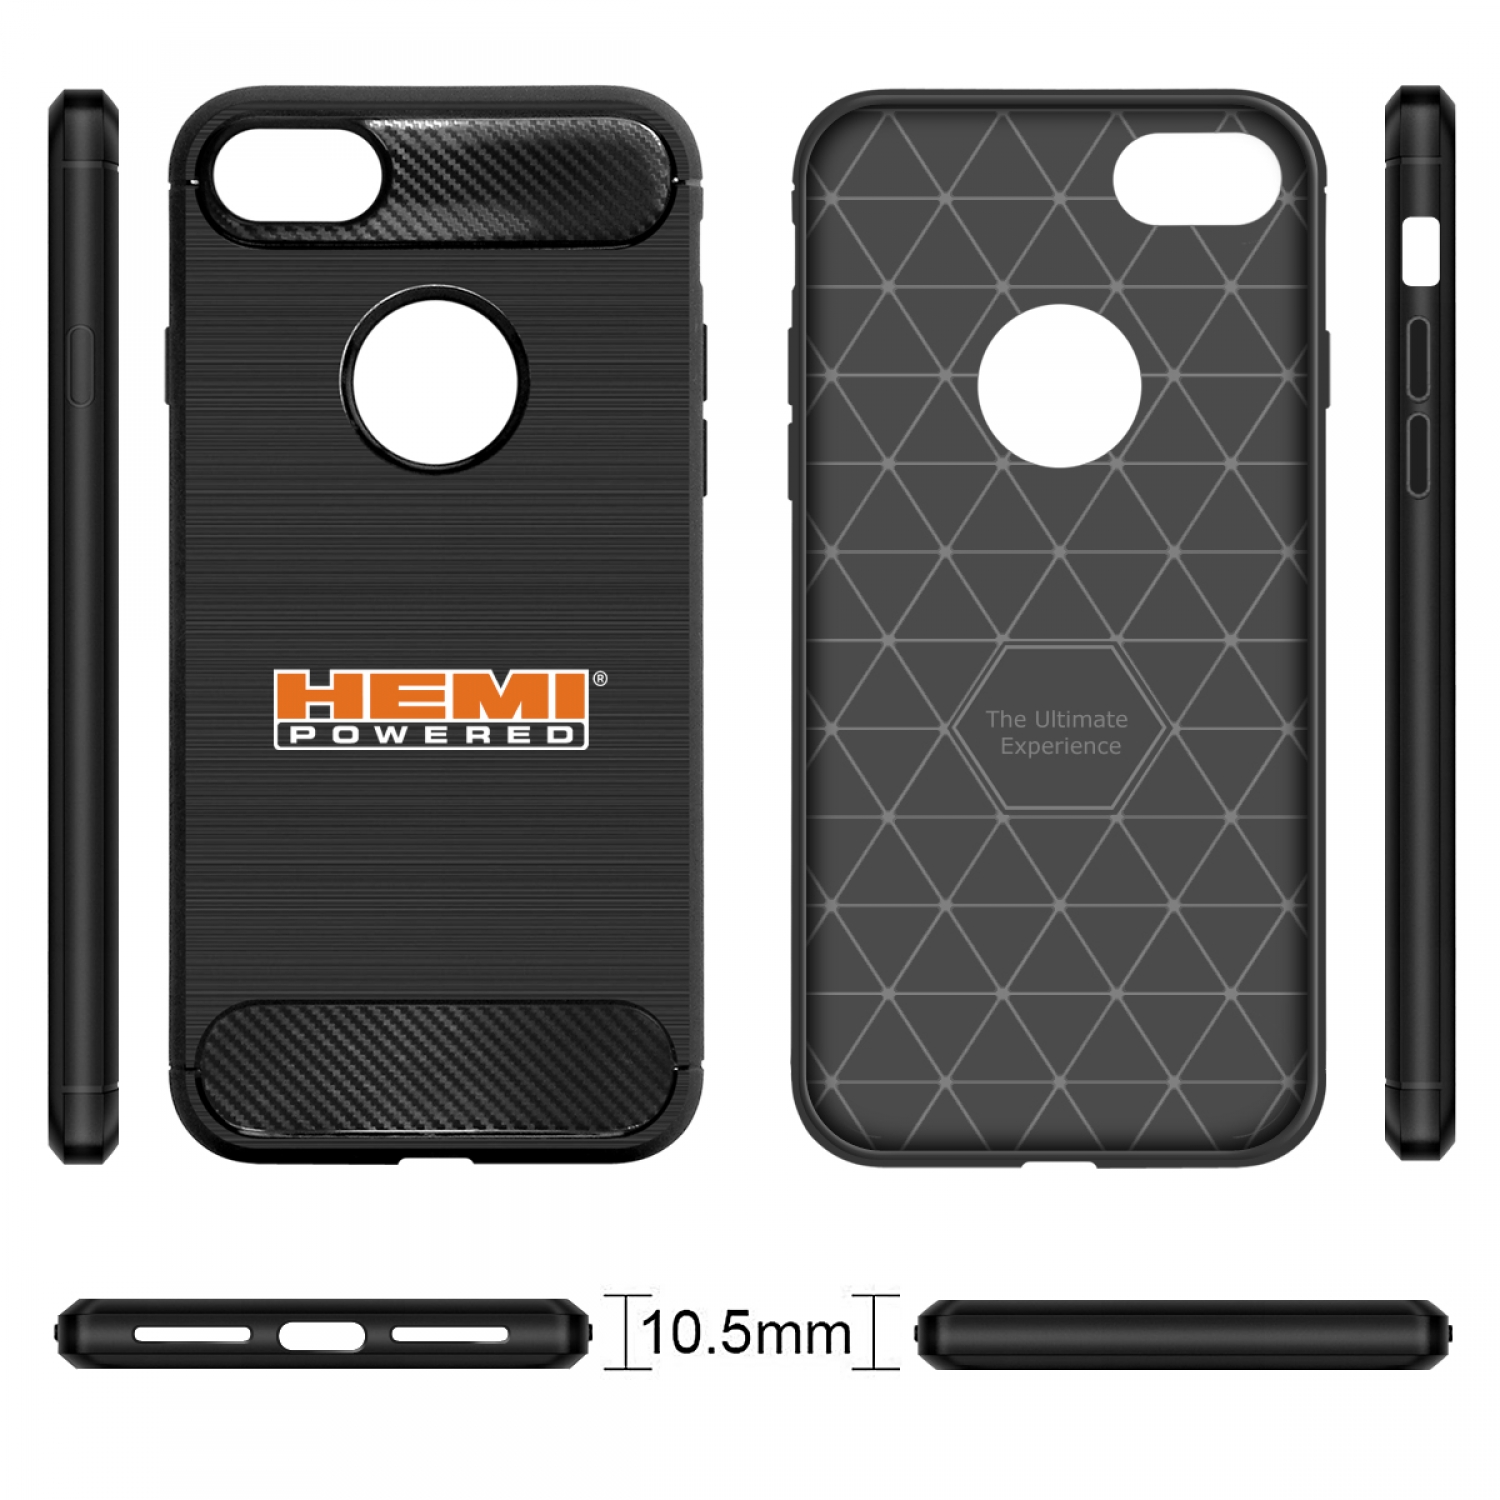 iPhone 7 Case, HEMI Powered Black TPU Shockproof Carbon Fiber Textures Cell Phone Case